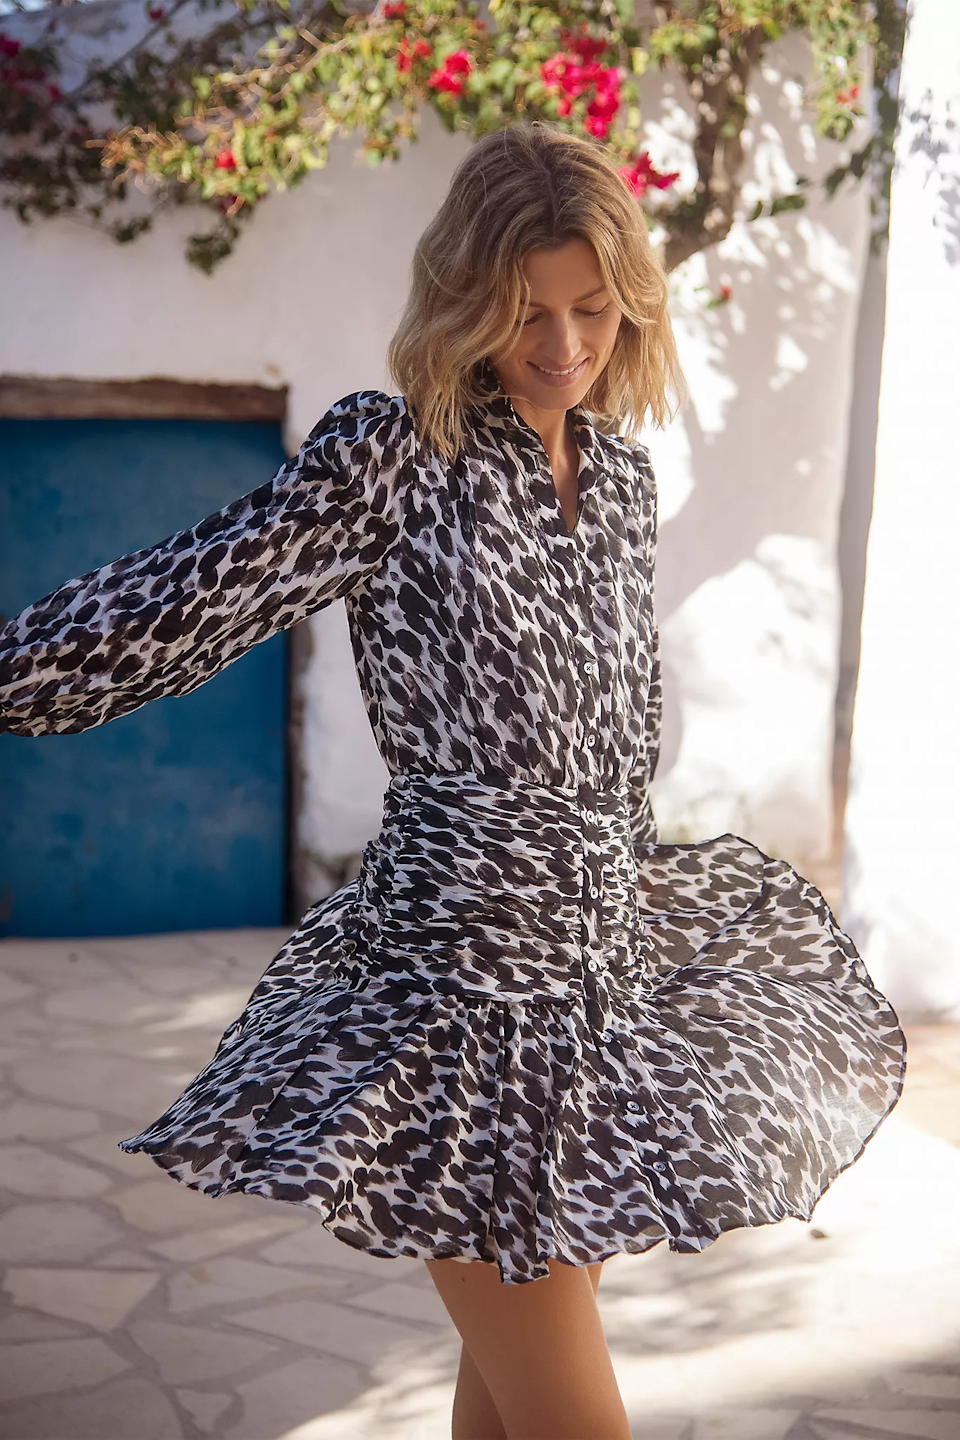 """<h2>Bold Printed Dresses</h2><br>""""Happy dresses are bringing the optimism for 2021! Bold prints with accentuated waists get us ready to jump into the new year."""" <br><br>– Anu Narayanan, Chief Merchandising Officer, Anthropologie Group<br><br><strong>Maeve</strong> Semele Leopard Mini Dress, $, available at <a href=""""https://go.skimresources.com/?id=30283X879131&url=https%3A%2F%2Fwww.anthropologie.com%2Fshop%2Fsemele-leopard-mini-dress%3Fcategory%3Ddresses%26color%3D018%26type%3DSTANDARD%26quantity%3D1"""" rel=""""nofollow noopener"""" target=""""_blank"""" data-ylk=""""slk:Anthropologie"""" class=""""link rapid-noclick-resp"""">Anthropologie</a>"""